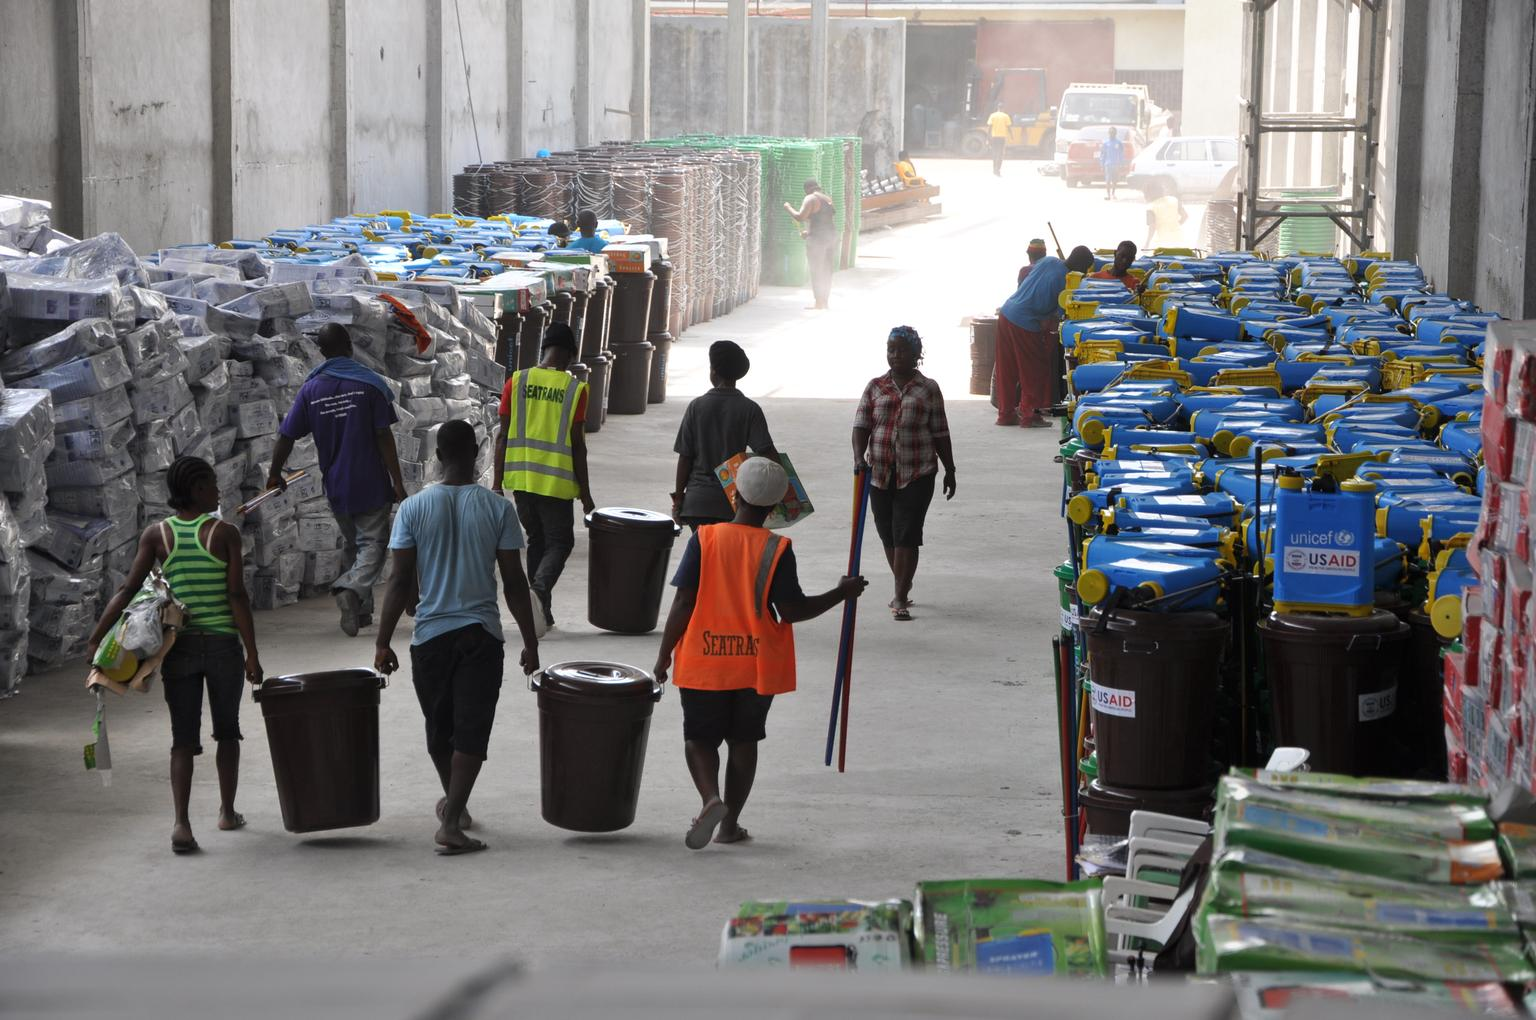 On 28 January, workers carry large buckets and other items that are part of school infection prevention and control (IPC) kits, in a warehouse in Monrovia, the capital. The logos of UNICEF and USAID (the United States Agency for International Development) – which helped fund the kits – are visible on some of the buckets and other items. The kits also contain buckets with faucets, rubber gloves and rubber boots, thermal guns, chlorine and chlorine sprayers, soap, brooms and other items for schools to implement the strict safety protocols that have been developed for the resumption of classes in the context of the Ebola outbreak. UNICEF has procured and is packaging and dispatching more than 7,000 IPC kits to over 4,000 schools in the country. Liberia, with Guinea and Sierra Leone, continues to experience widespread and intense EVD transmission. In late January/early February 2015 in Liberia, as schools prepare to reopen, UNICEF and partners are helping reduce as much as possible the risk of Ebola virus disease (EVD) transmission. Support includes training teachers to implement safety measures, such as daily temperature screenings, and supplying thermometers and hand-washing kits for schools. Because of EVD, public schools in Guinea, Liberia and Sierra Leone remained closed after the July–August break, depriving 5 million children of months of education. Amid continued school closures in Liberia and Sierra Leone, UNICEF is working with governments and communities to prepare for their eventual reopening. Schools are scheduled to reopen in Liberia on 16 February.